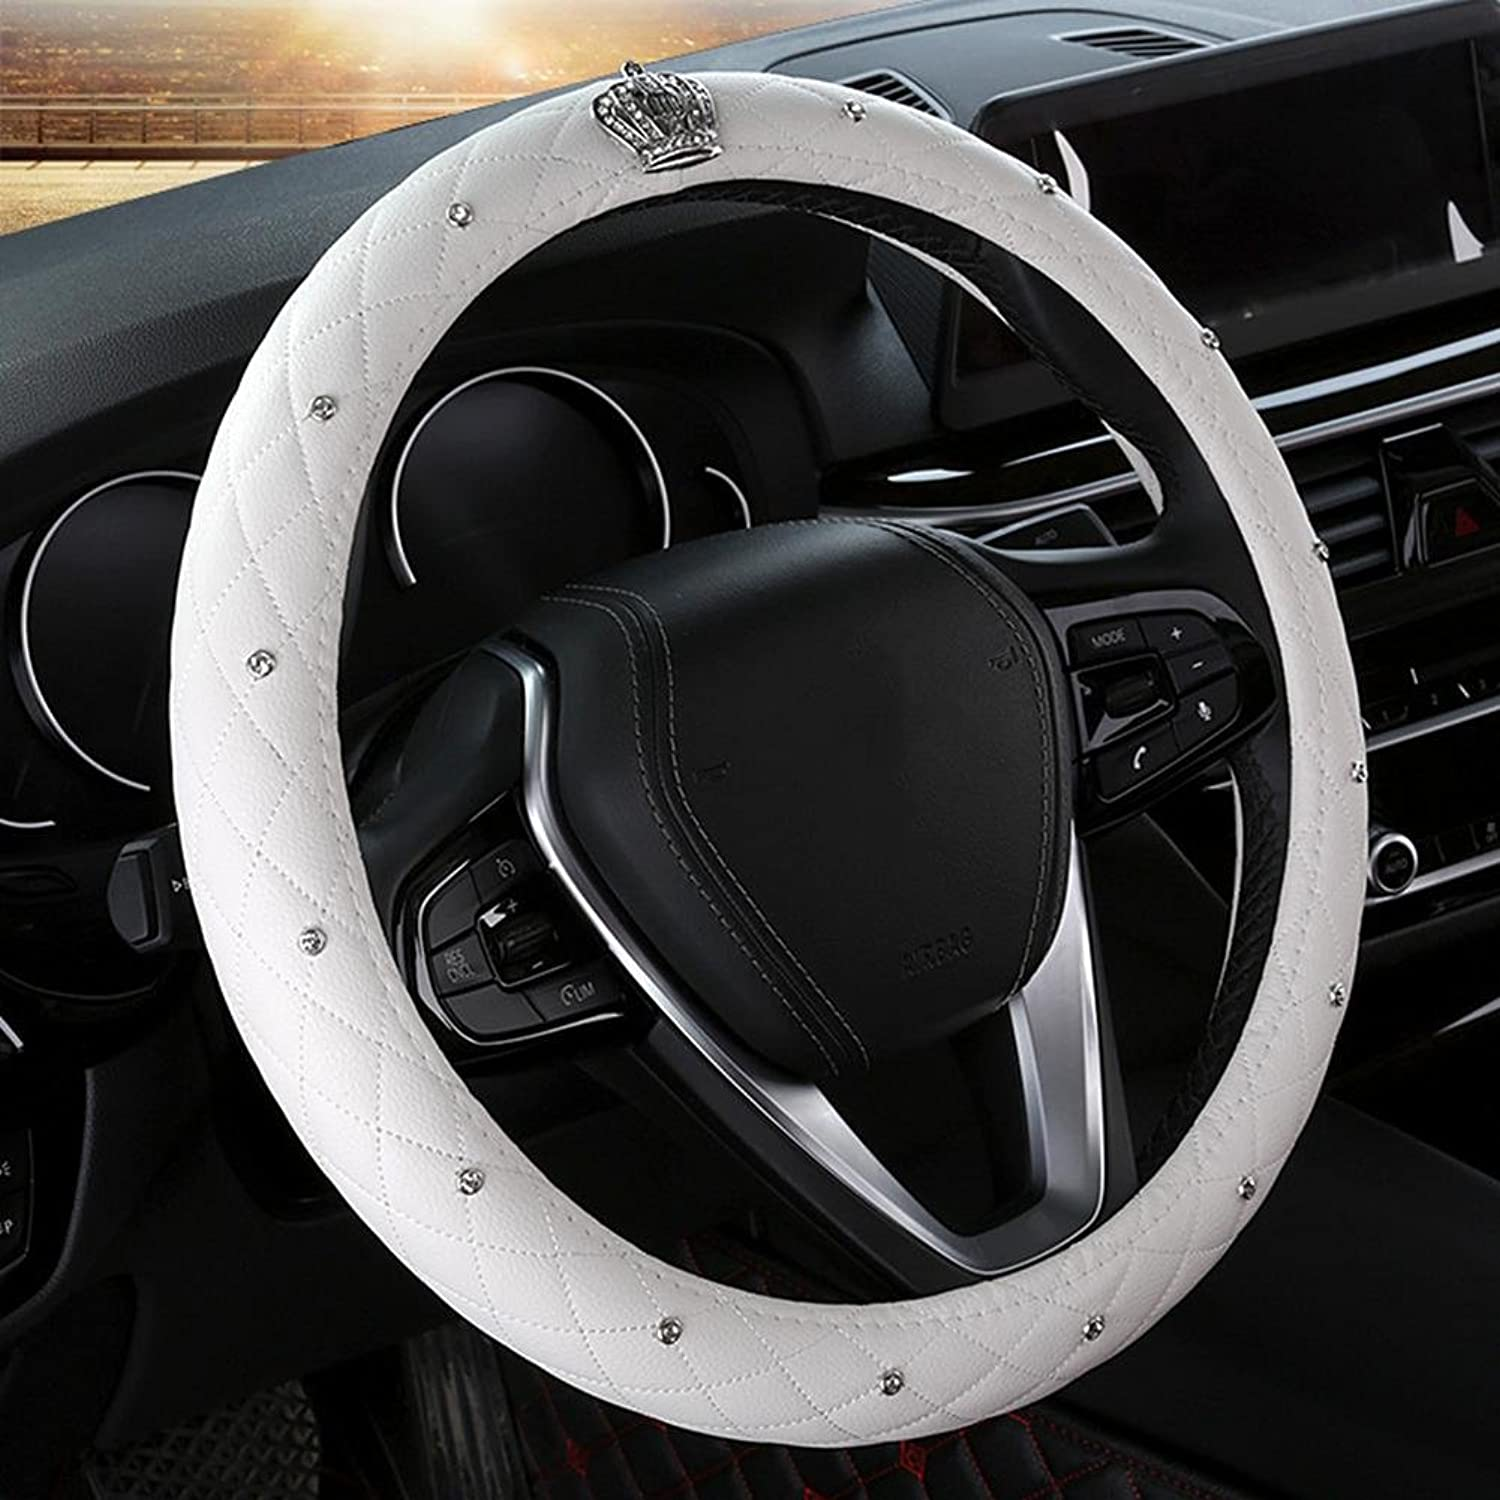 Auto Accessories 2018 Car Steering Wheel Predector, Woman Dedicated Cover Universal 141 2151 8 inch (3738.5 cm), Durable, Breathable, Anti Slip, No Smell, White, 38cm